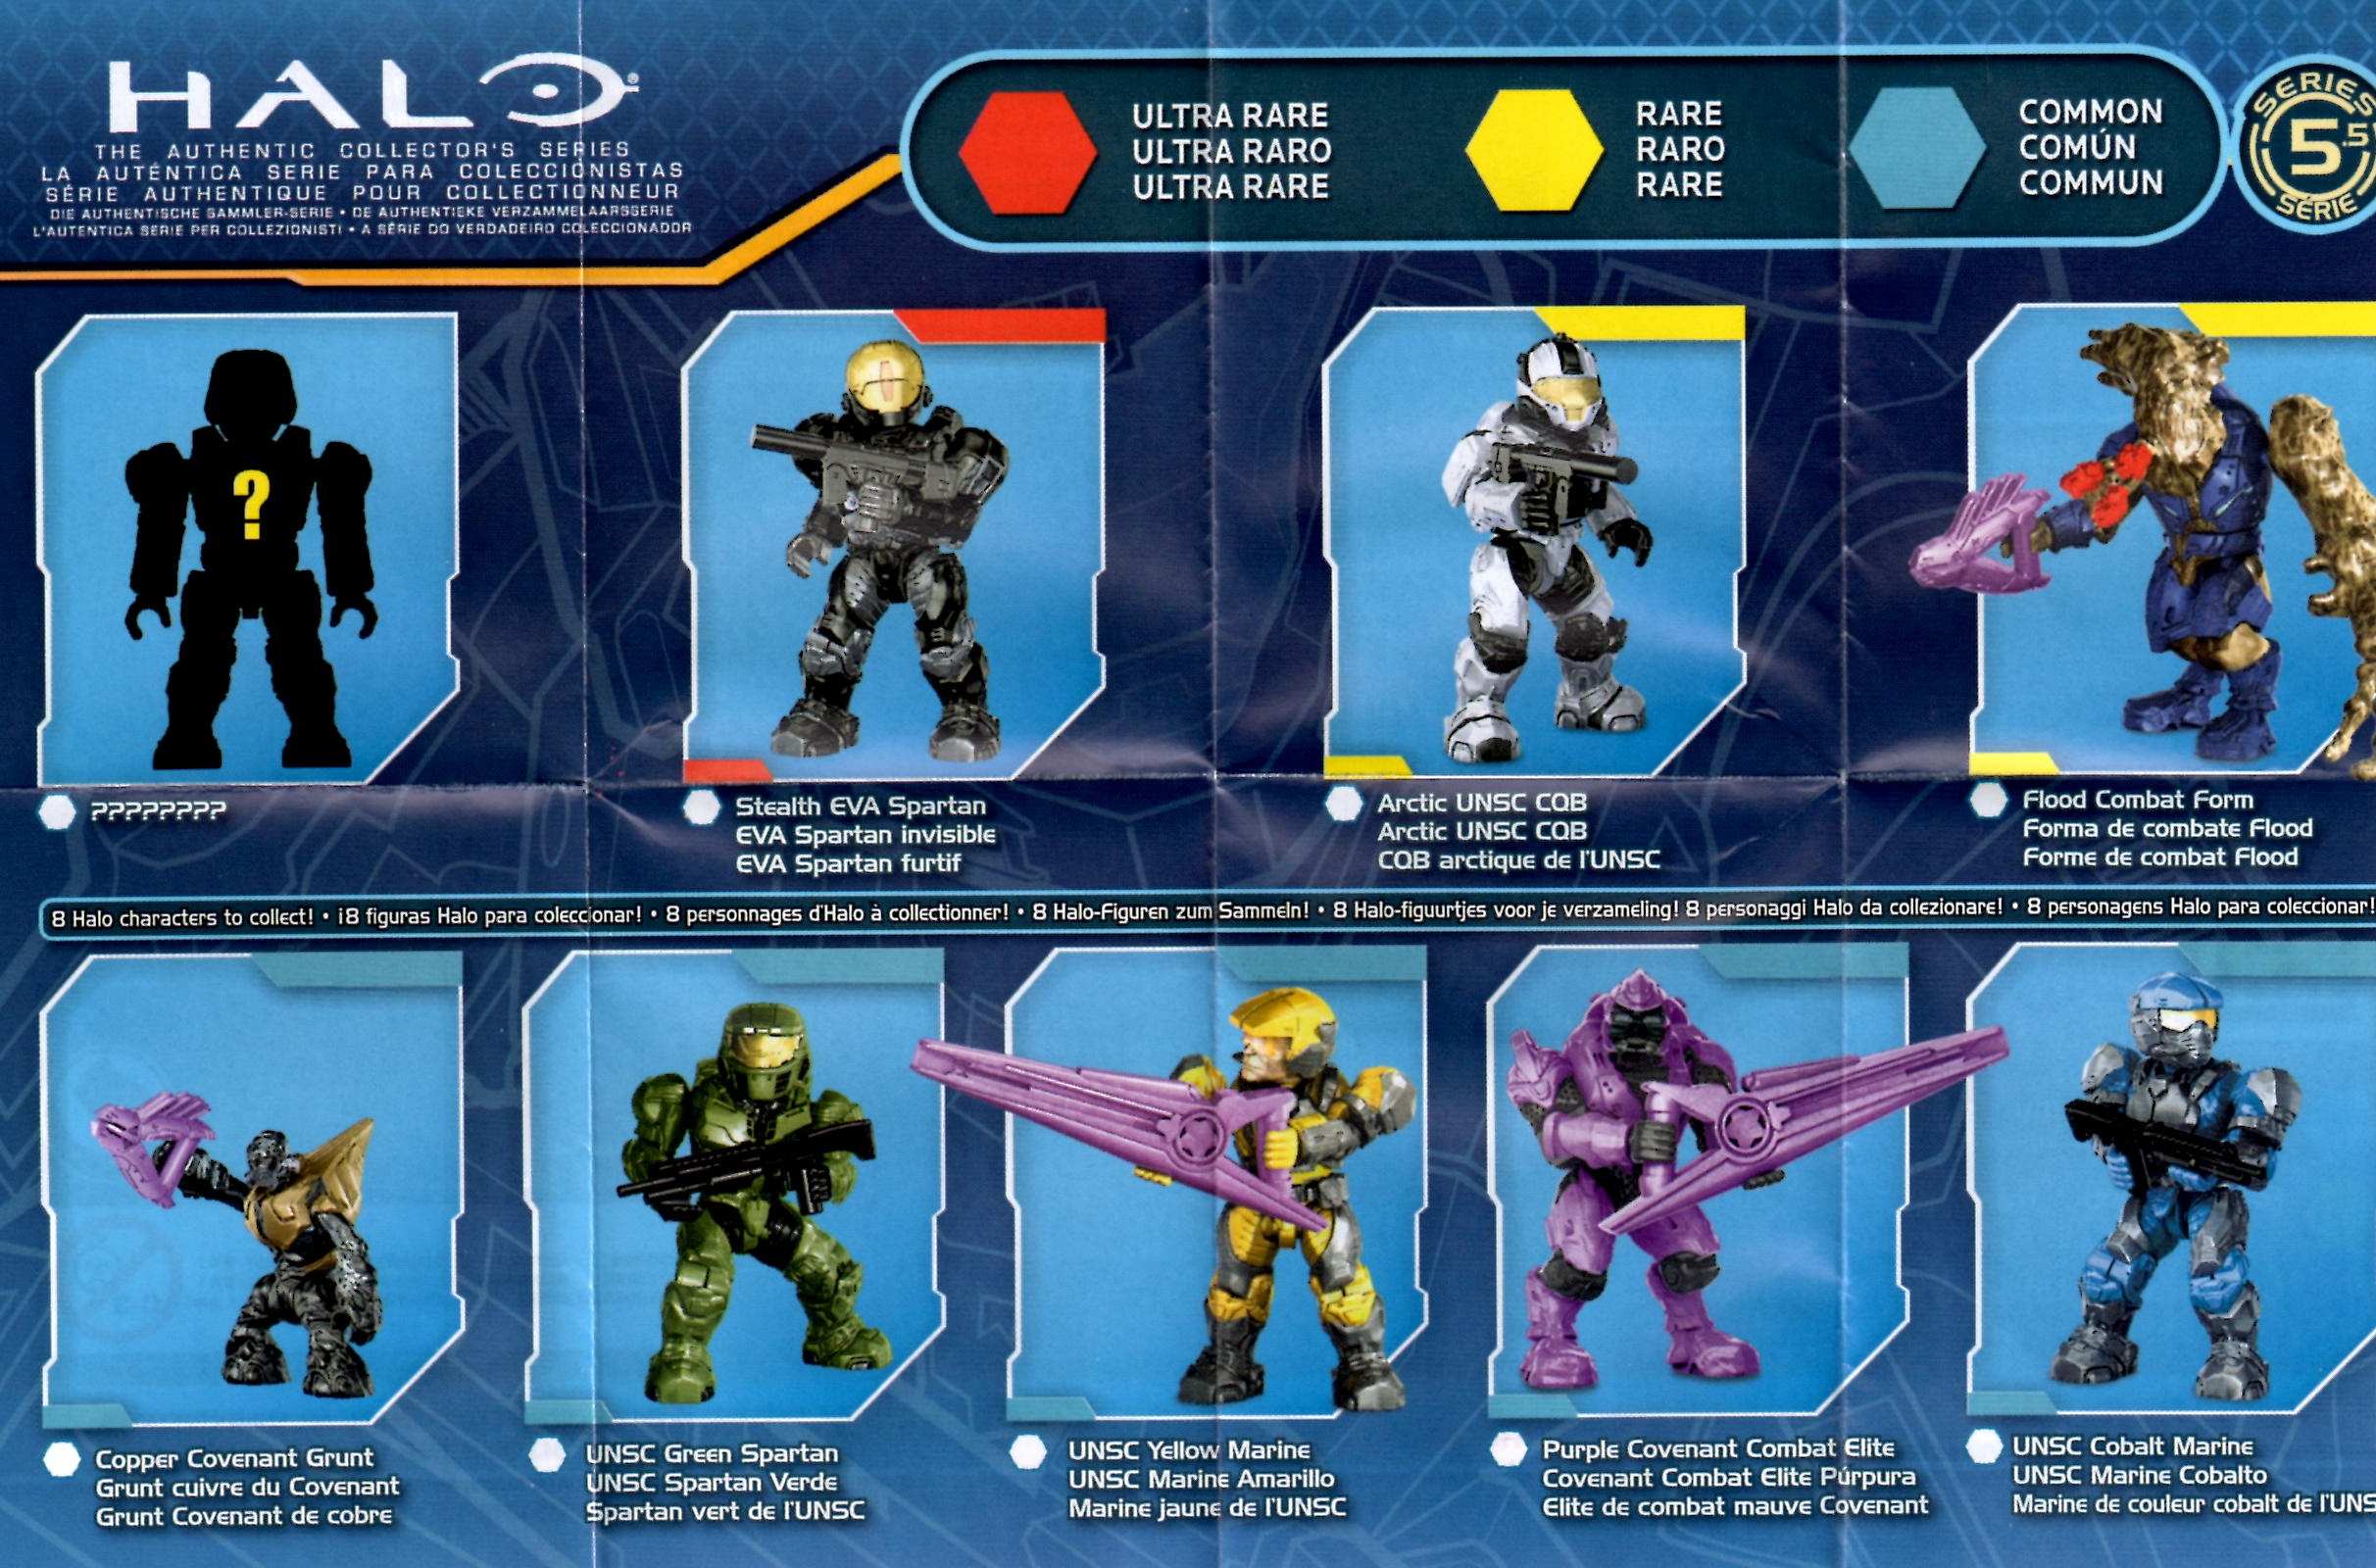 bagsmystery blind figure blinds codes figures category mystery bags list mega packs series bloks set halo